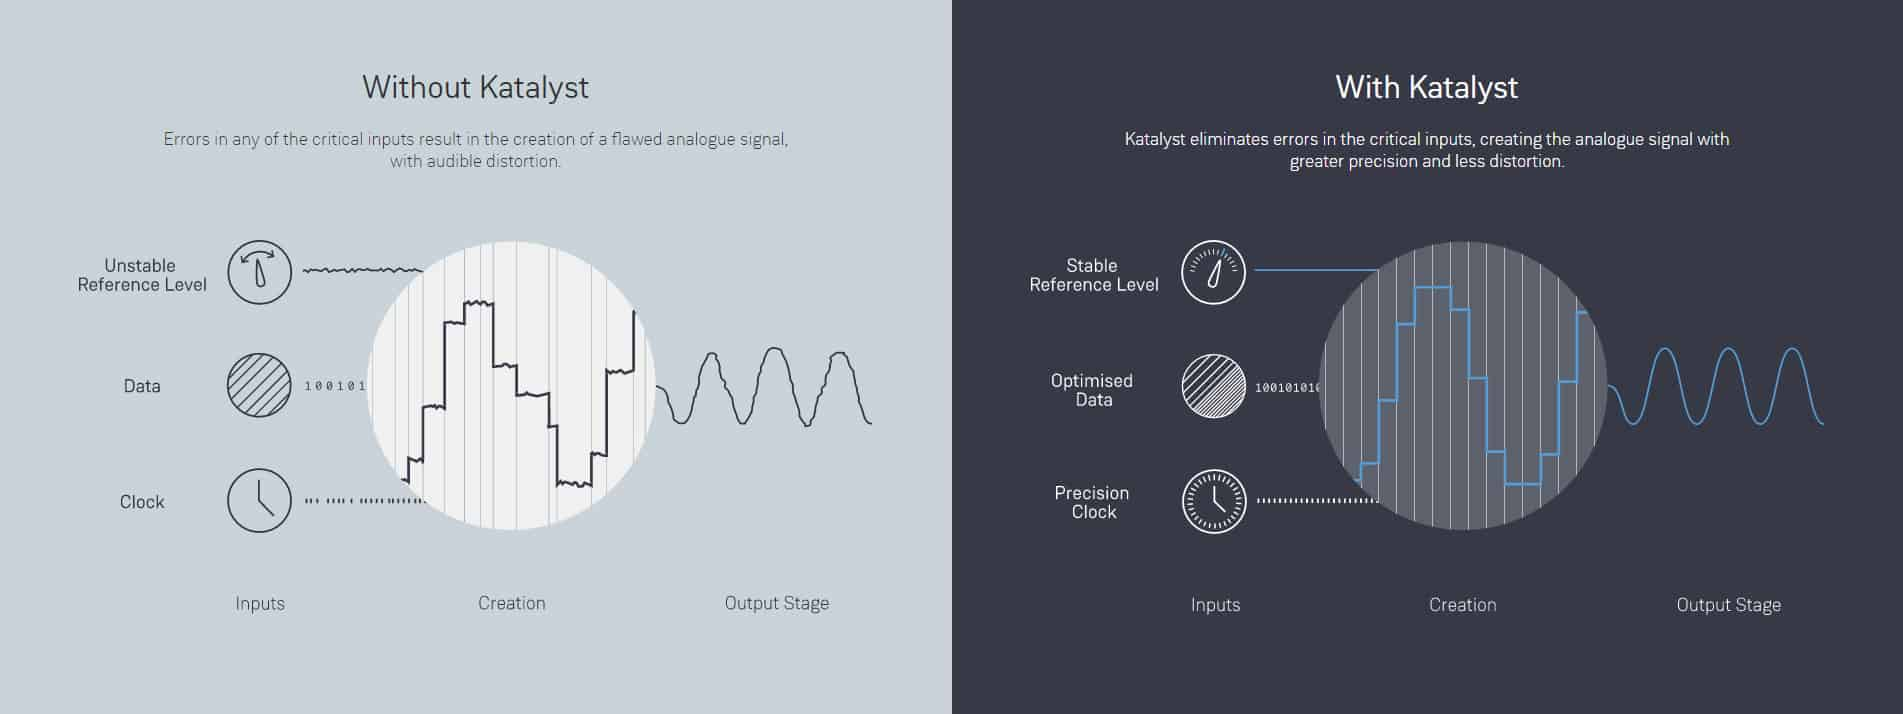 How Katalyst improves your analogue music signal